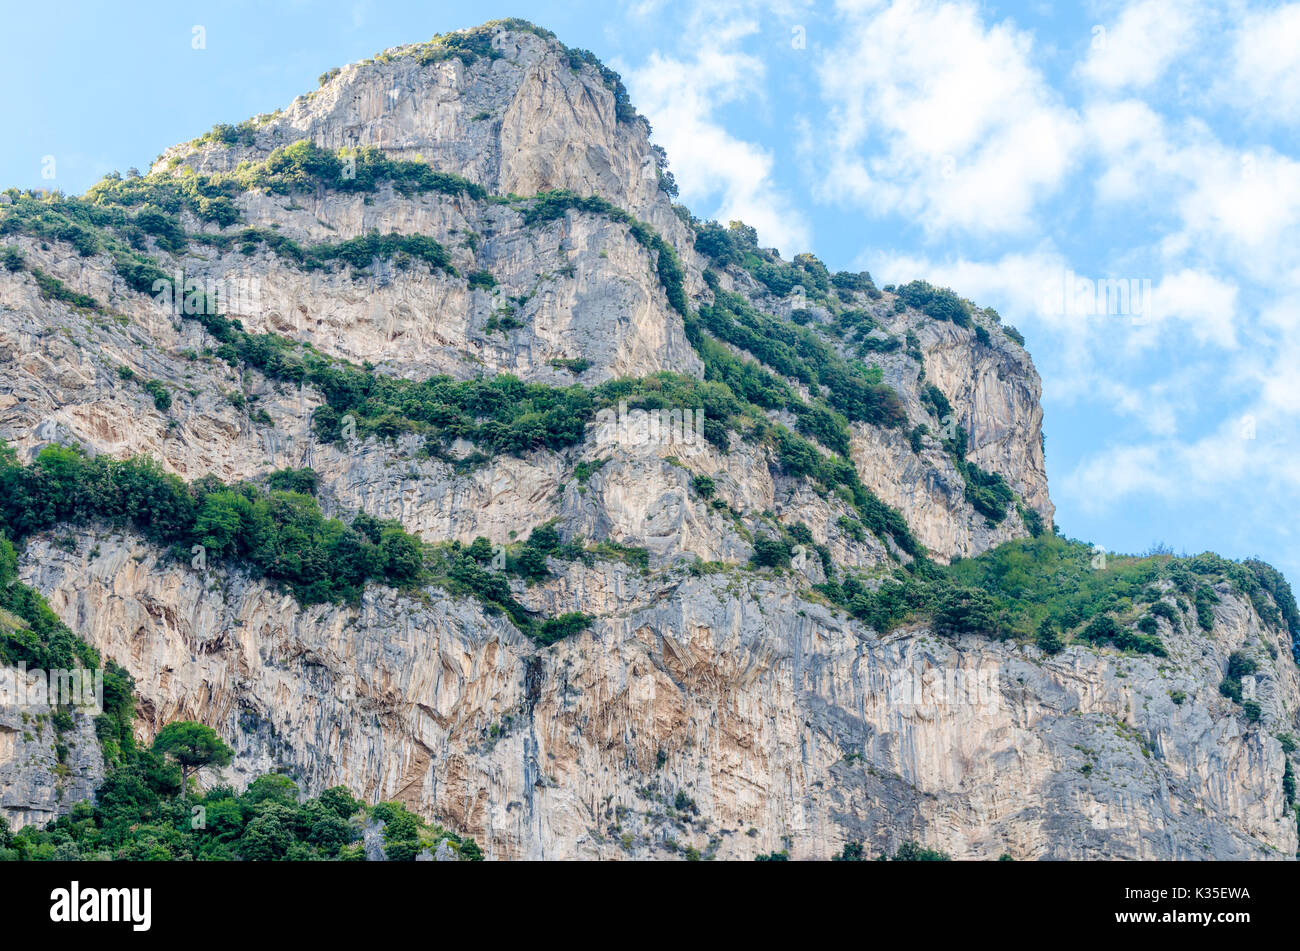 steep hill and cliffs above Positano town on the Amalfi Coast, Italy Stock Photo